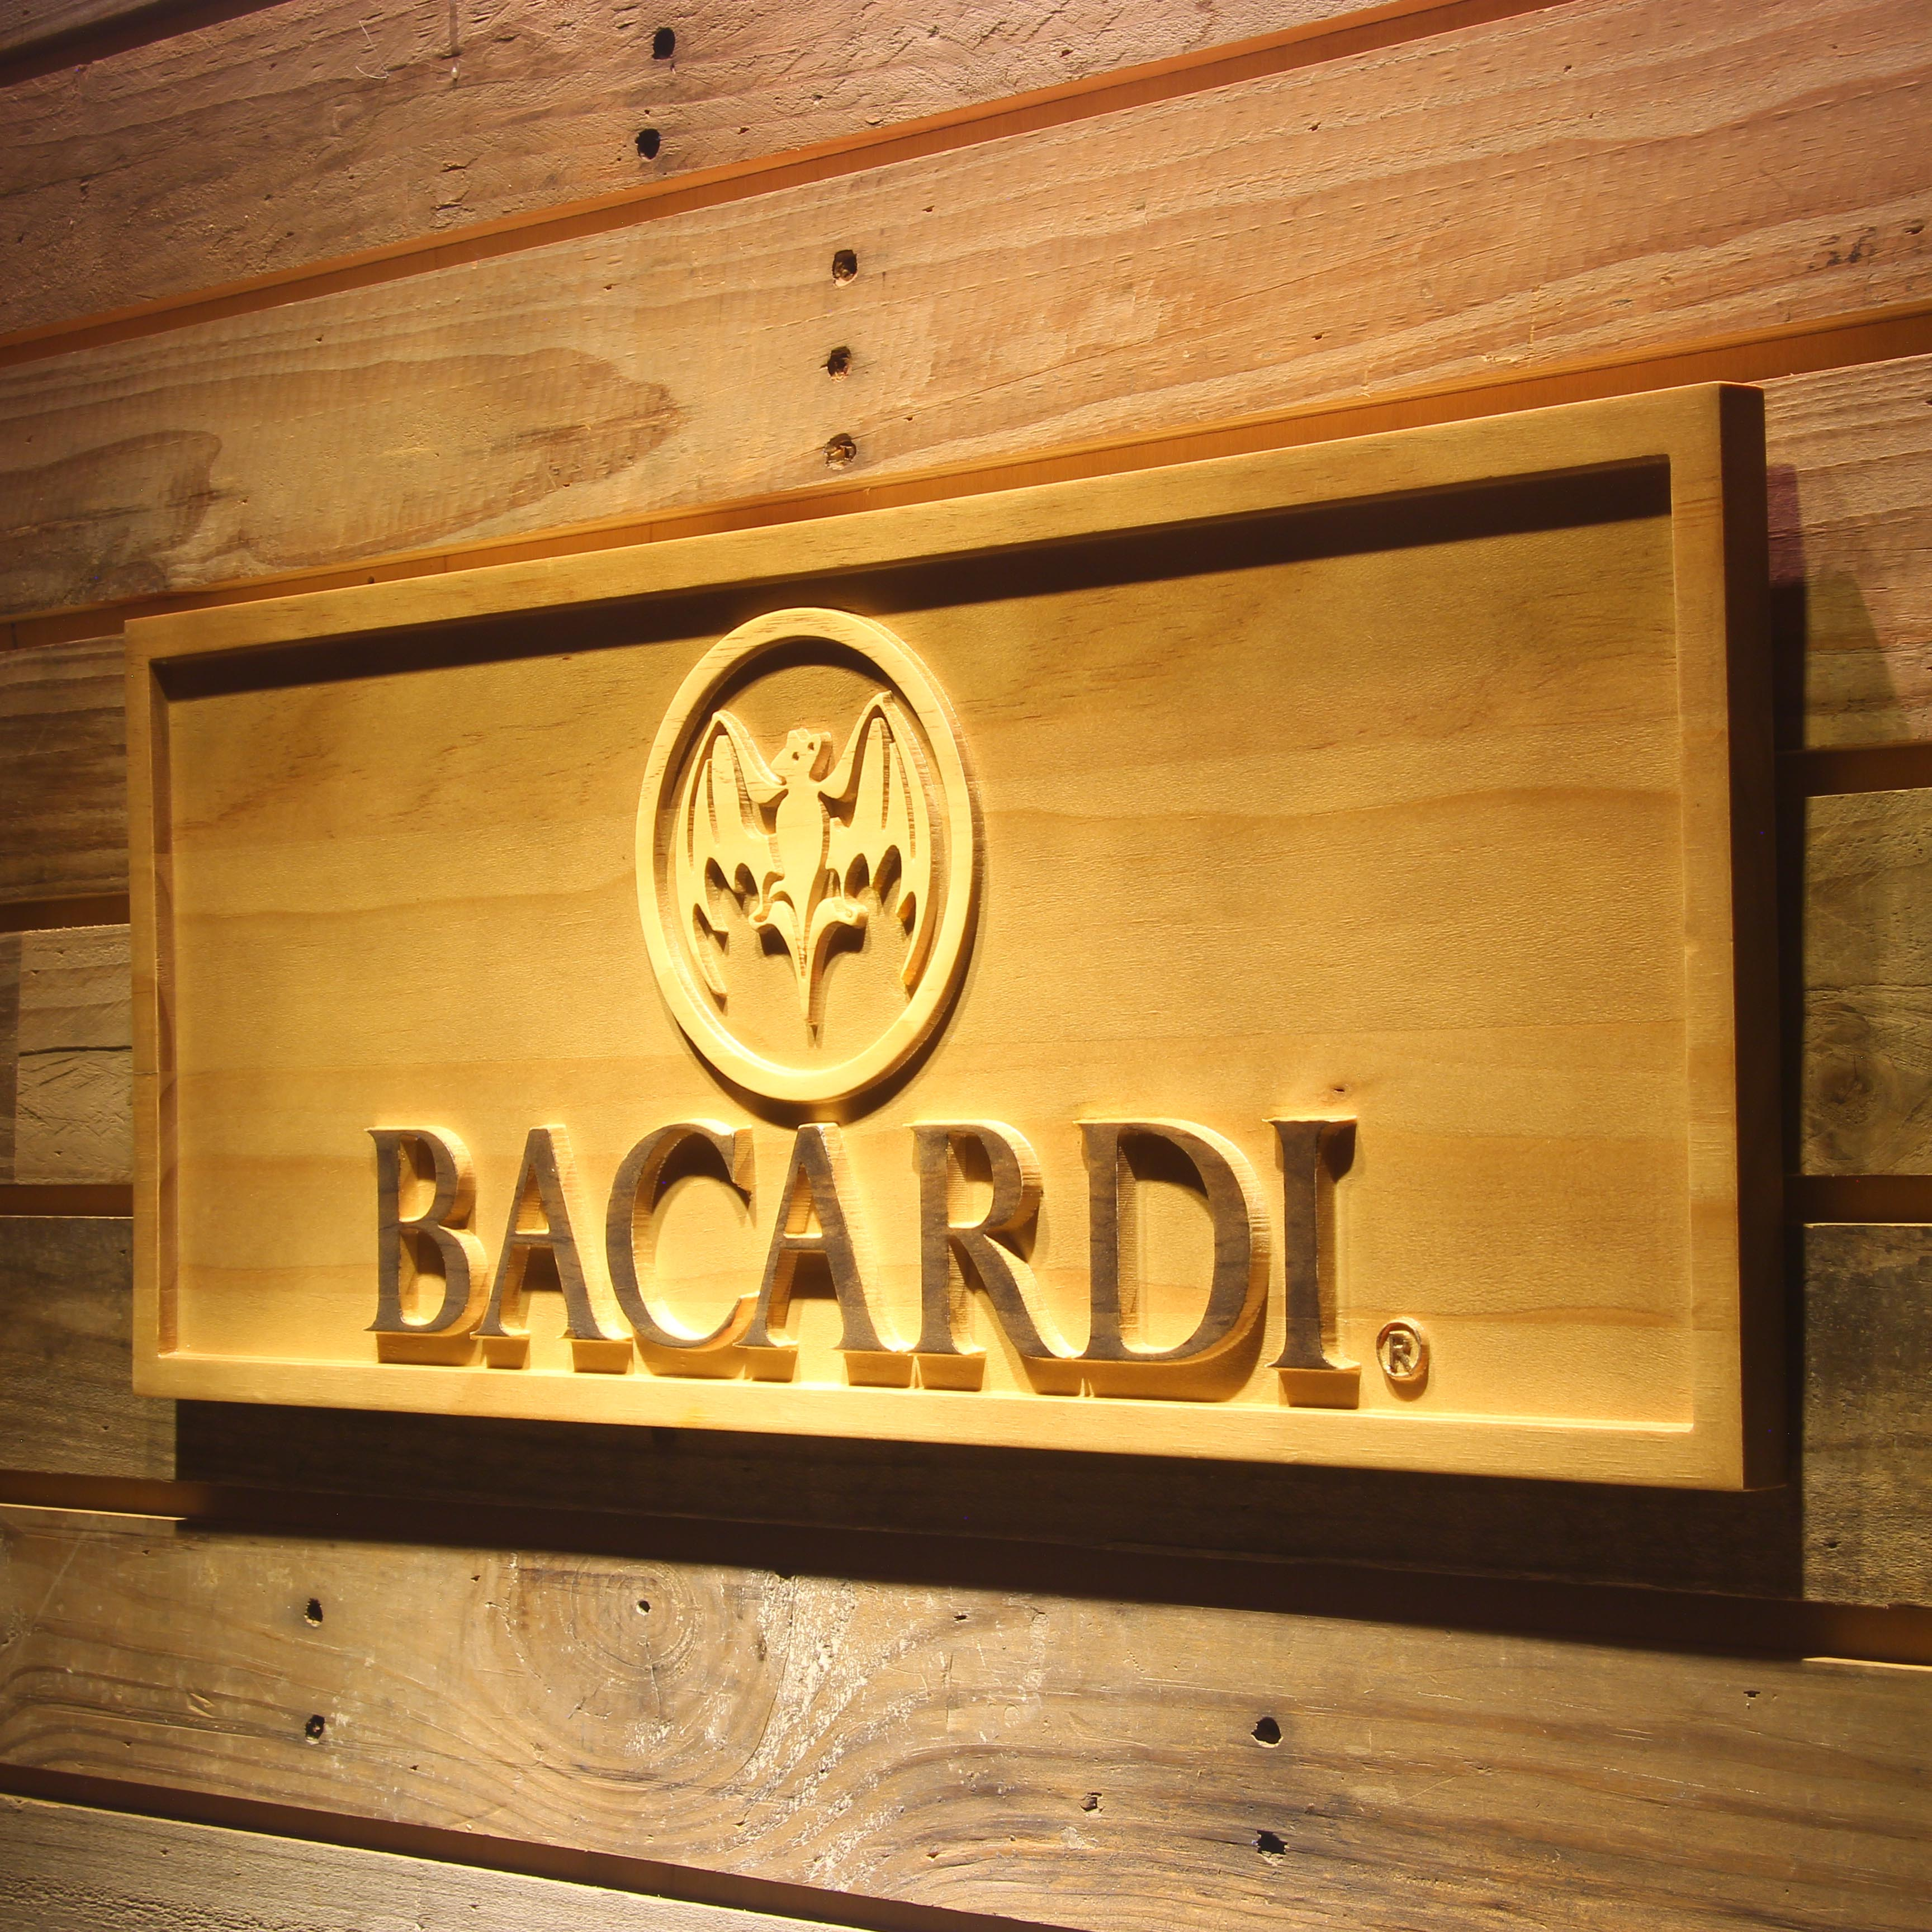 Bacardi Beer 3D Wooden Signs